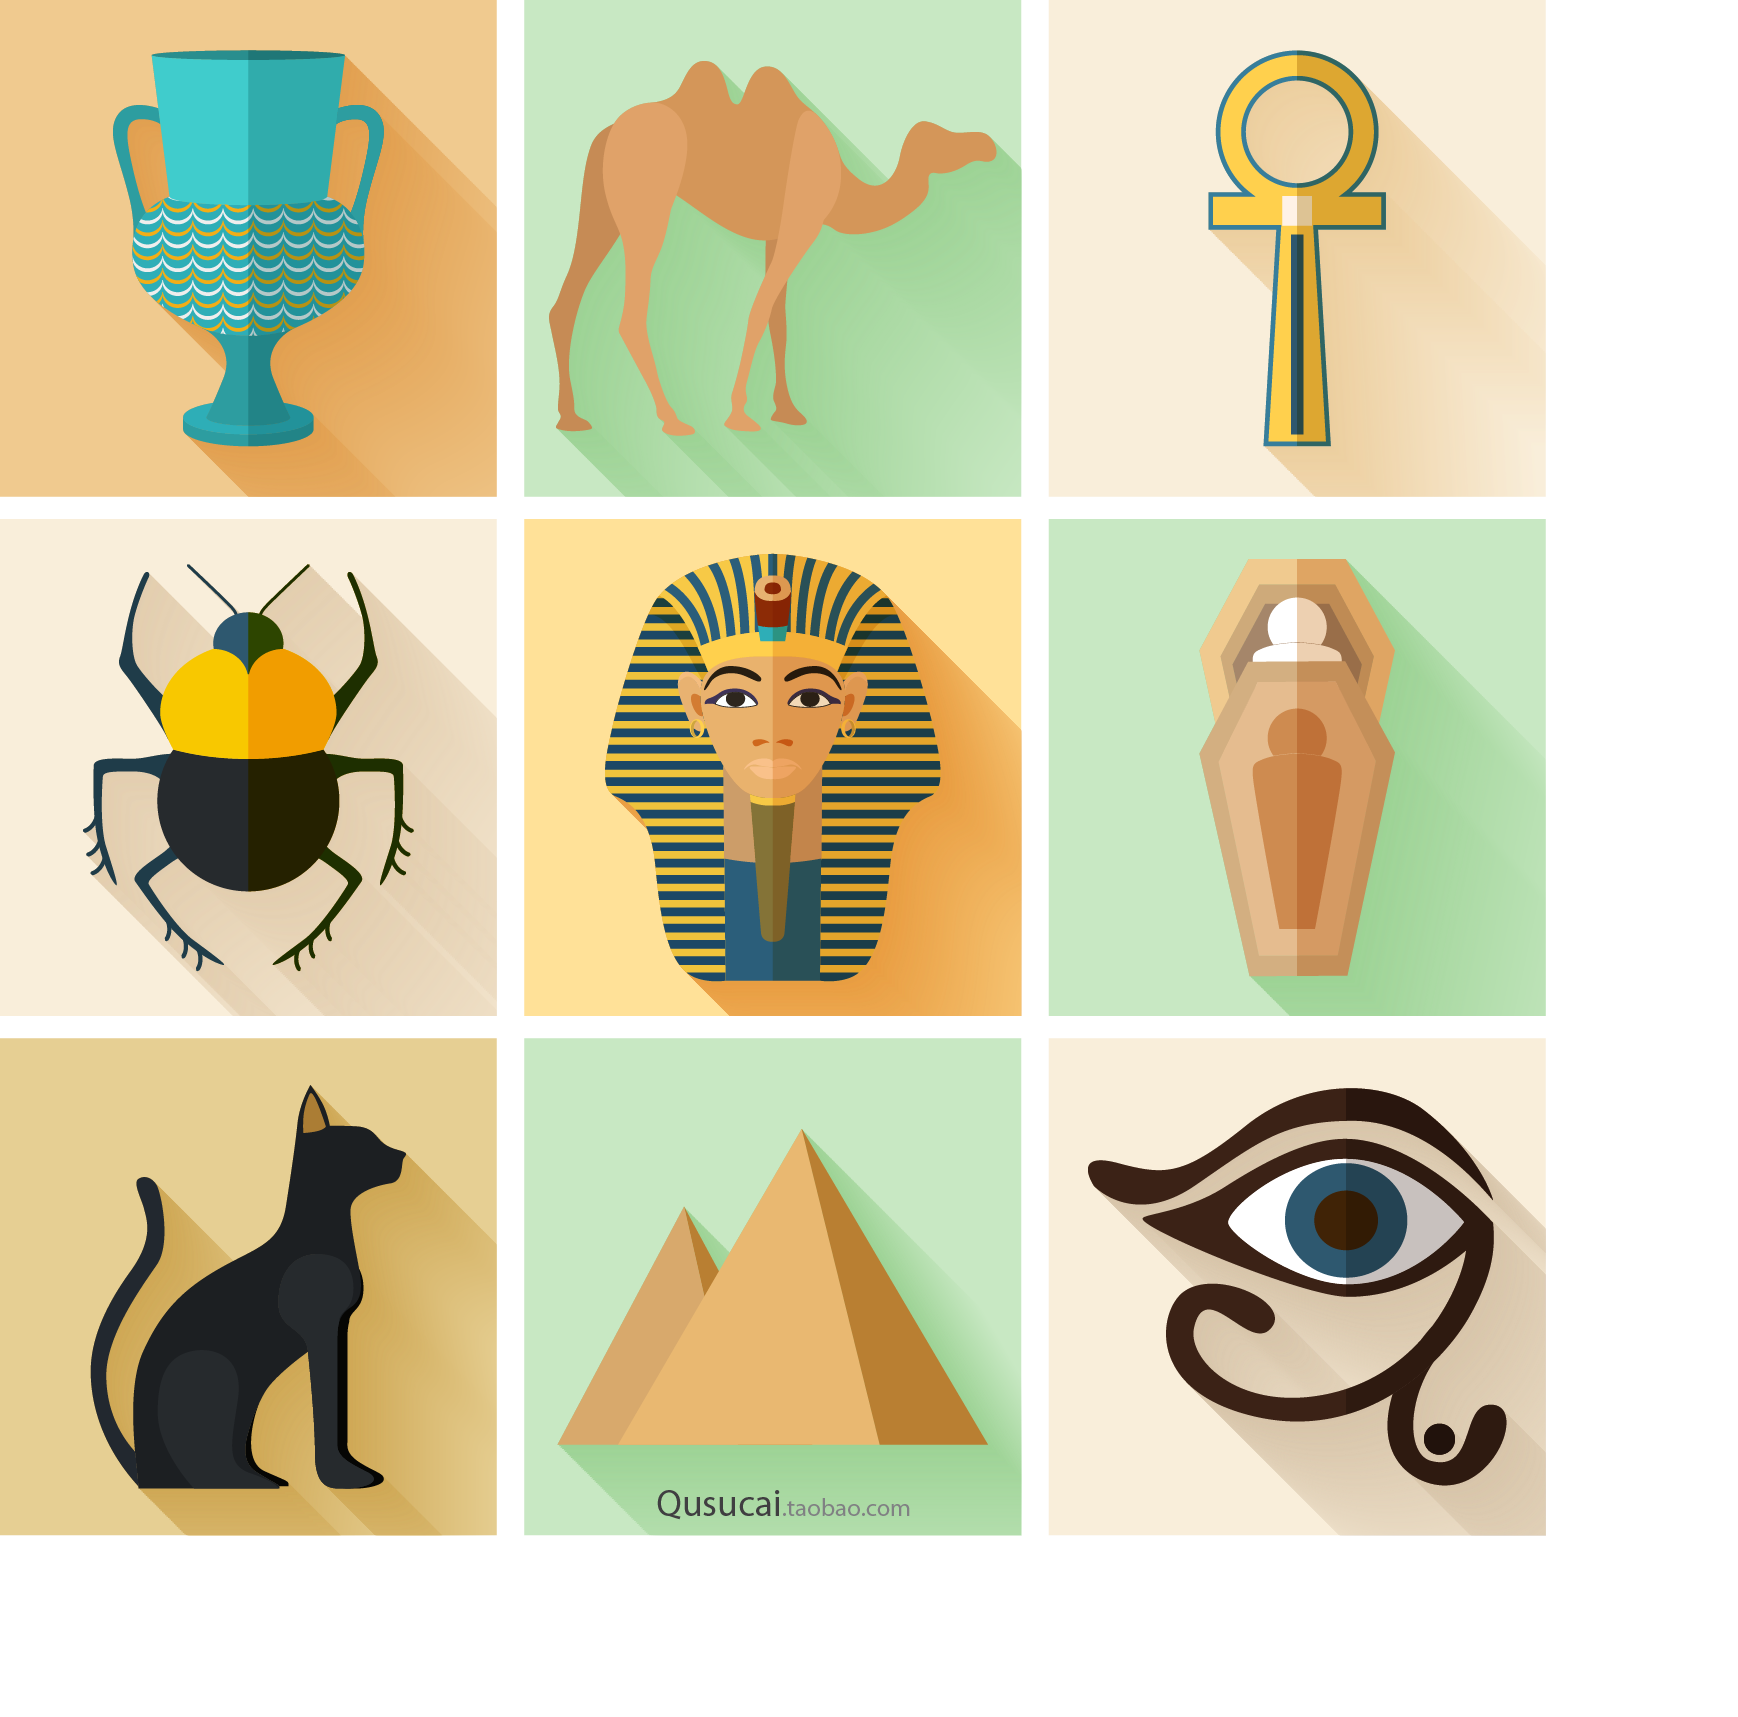 Great sphinx of giza. Egypt clipart pyramids illustration